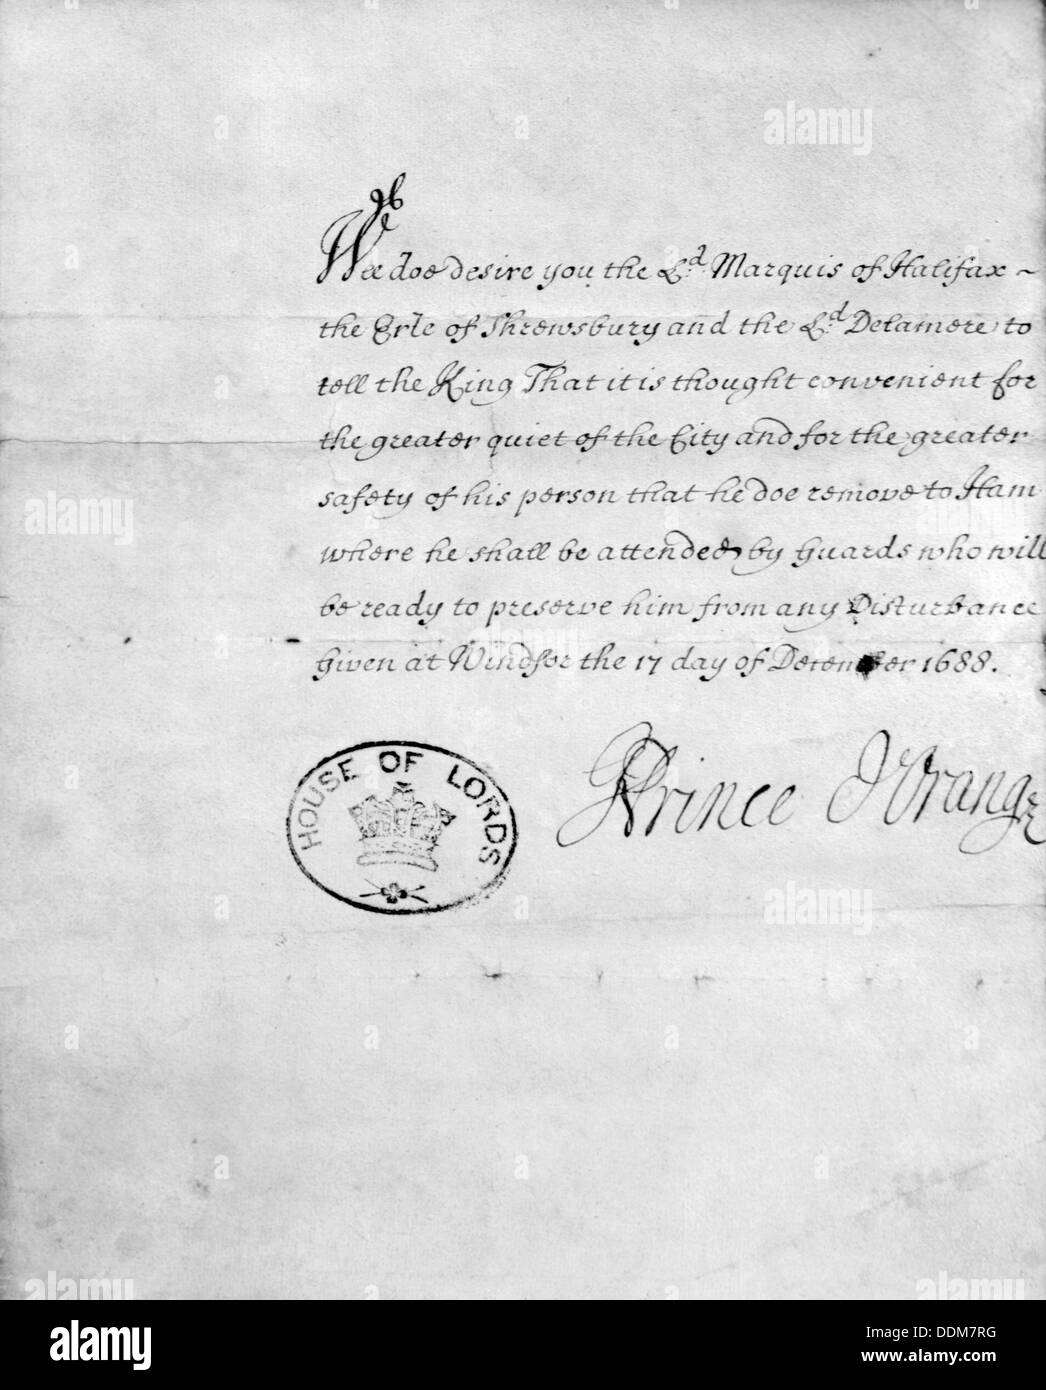 House of Lords document, signed Prince d'Orange, 1688. Artist: King William III - Stock Image